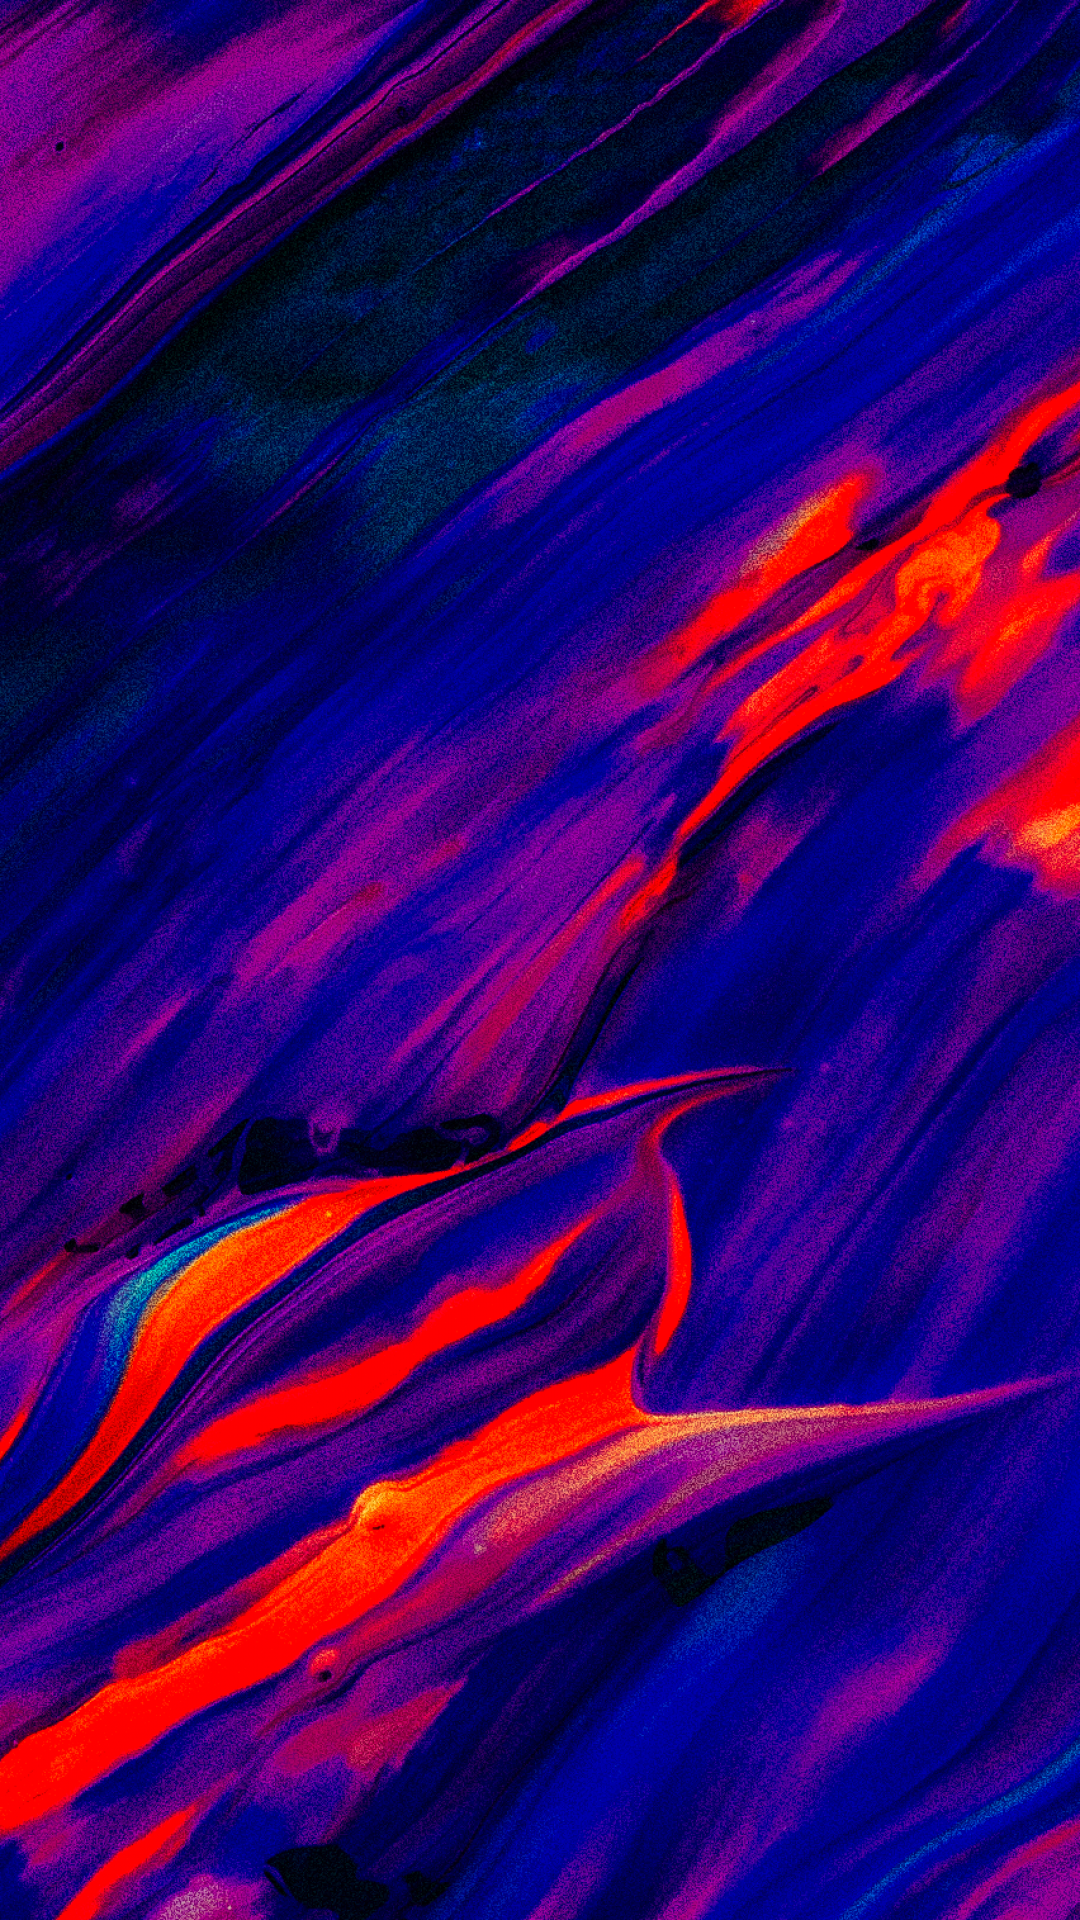 iPhone Wallpaper colors storm Les 3Wallpapers iPhone du jour (23/01/2018)